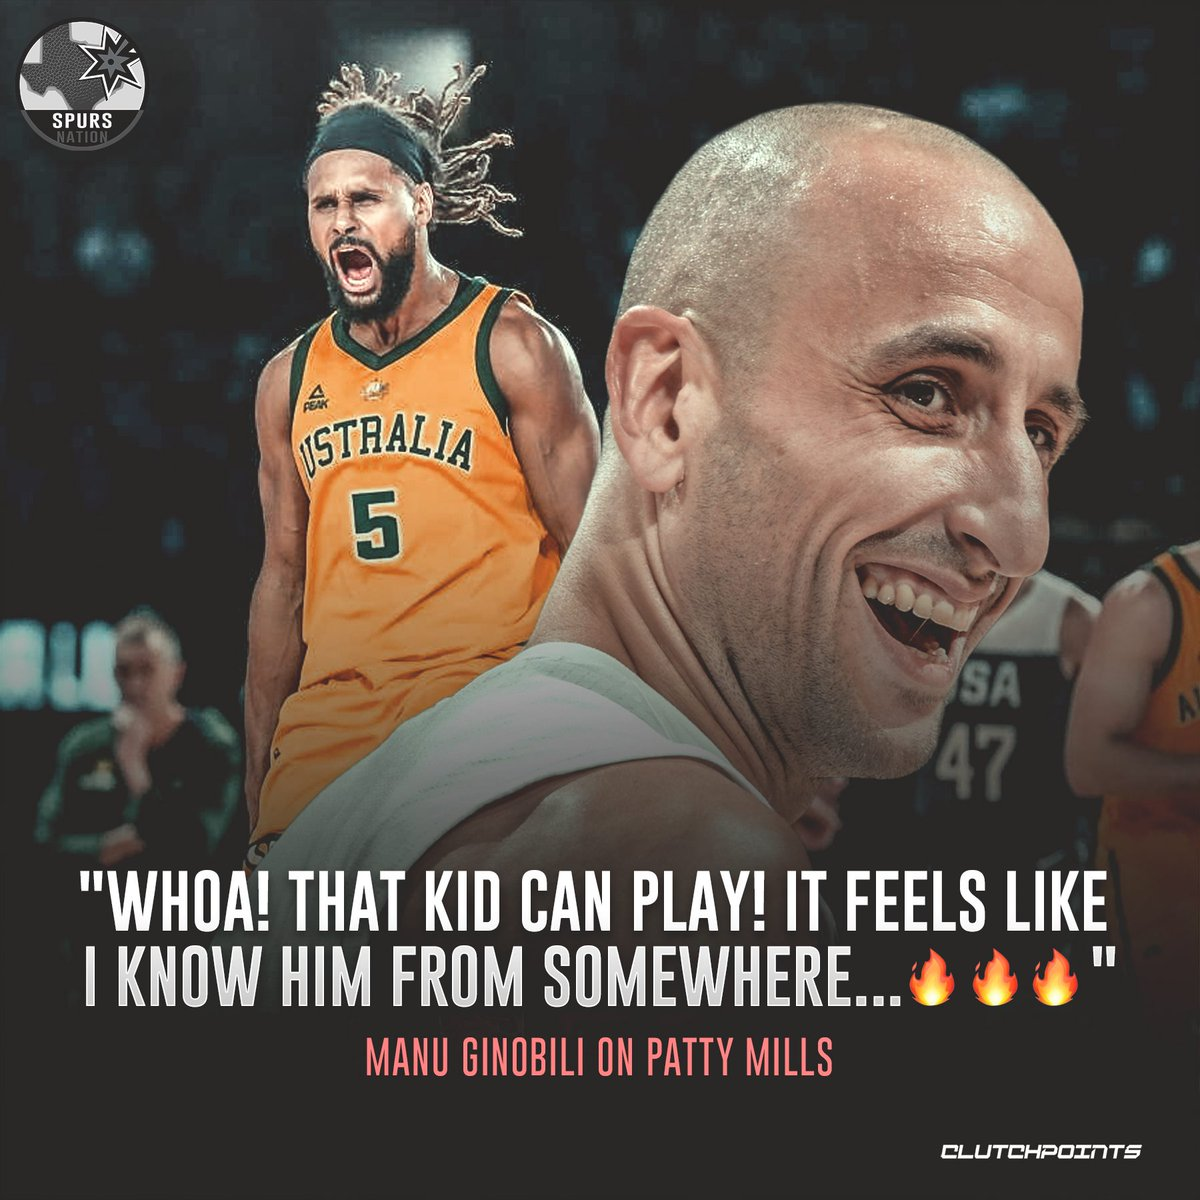 Manu Ginobili was flat out impressed with Patty Mills' performance against team USA   #Spurs #GoSpursGo <br>http://pic.twitter.com/jgCZn6WOZc